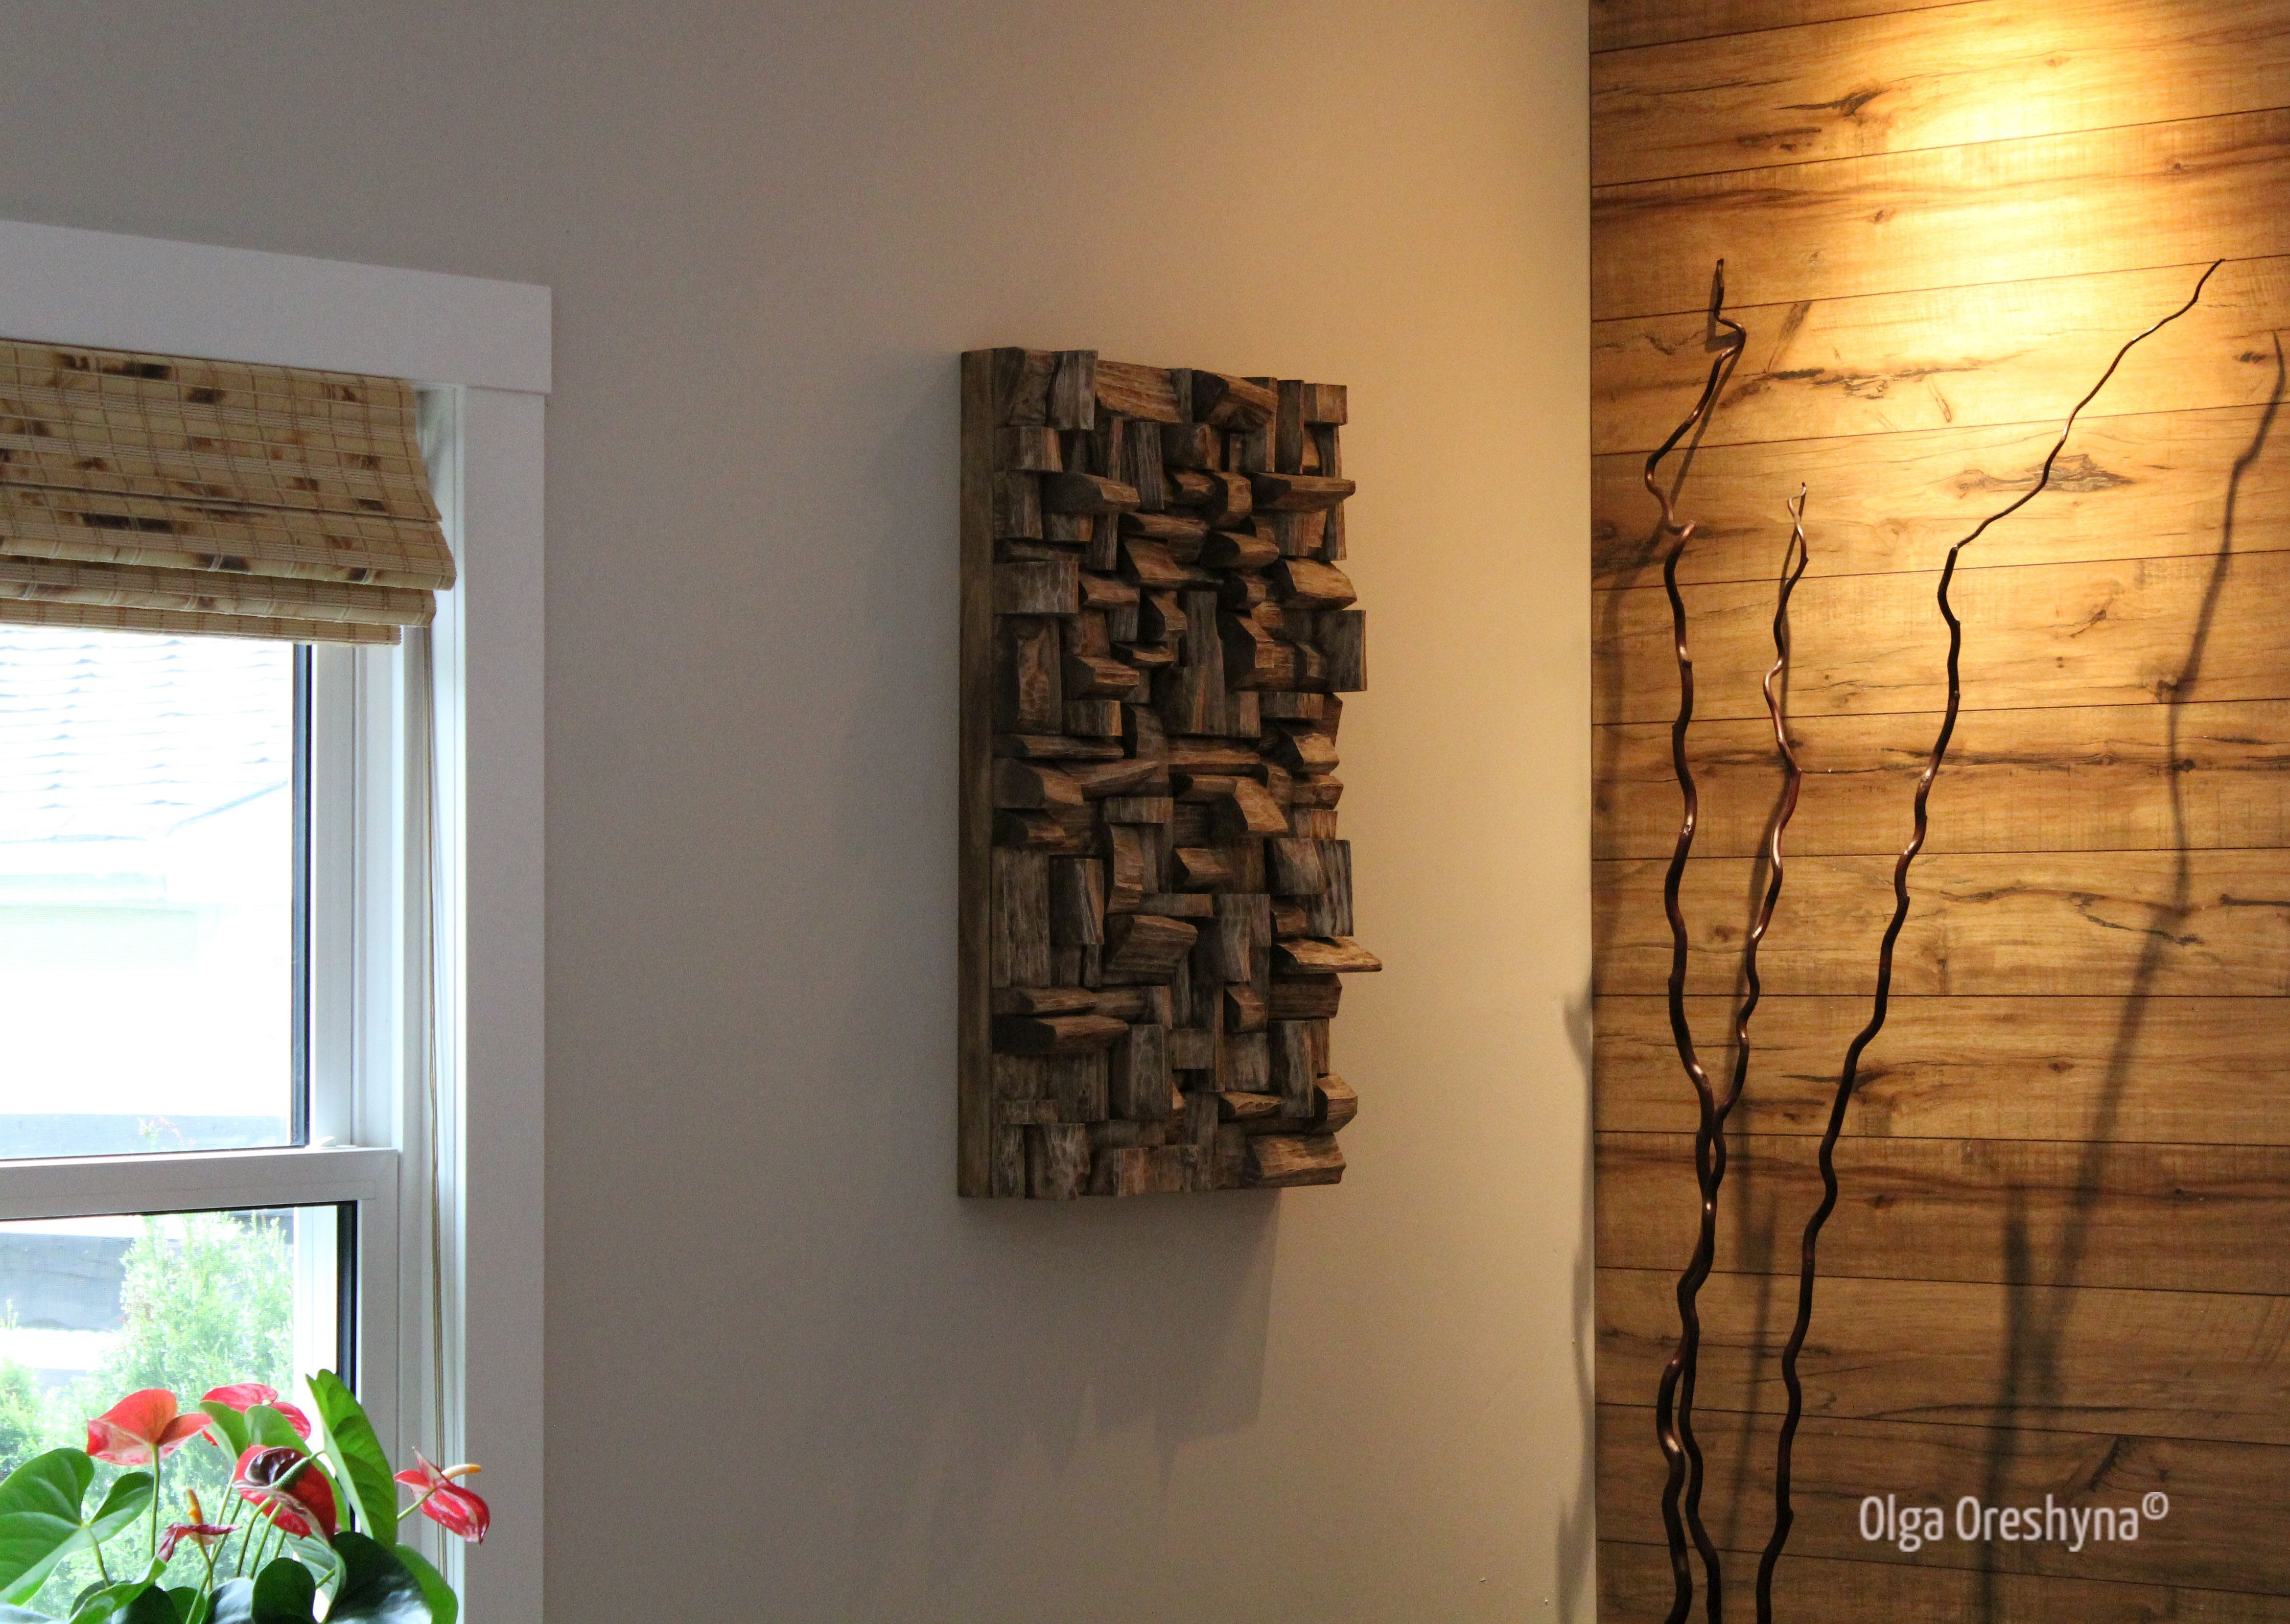 Abstract Wooden Wall Sculptures